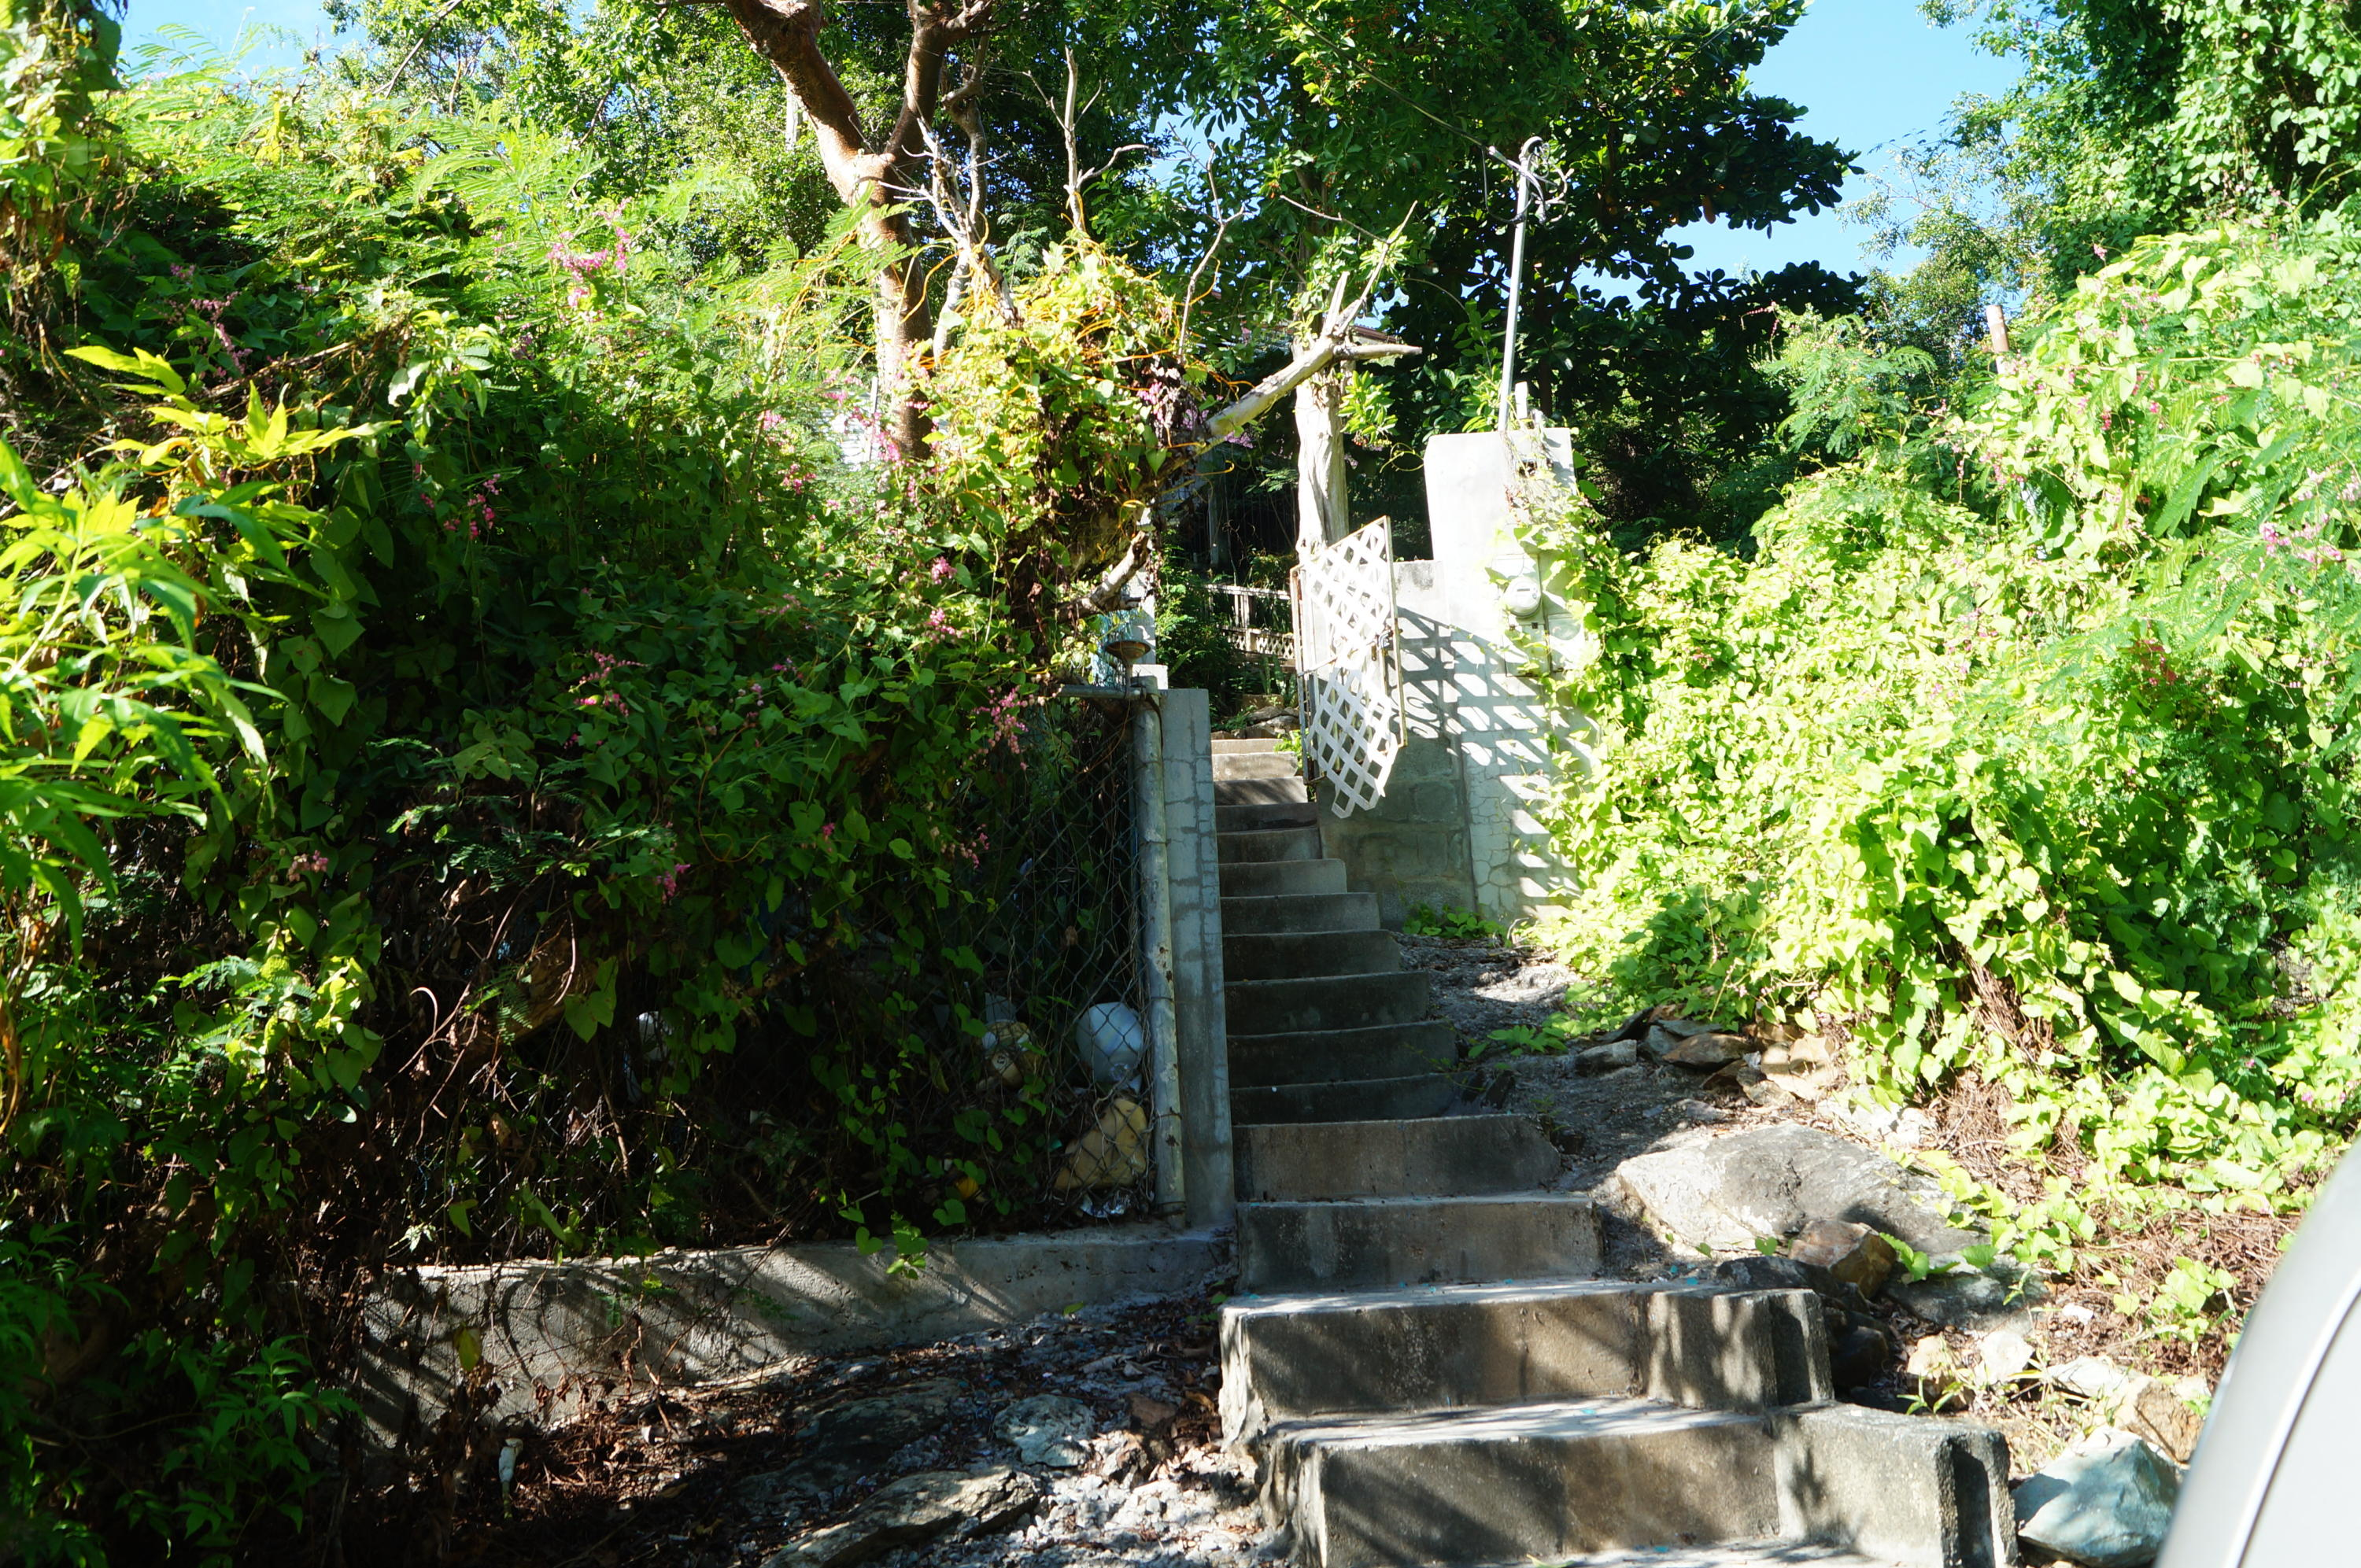 STAIRS FROM LOWER ROAD